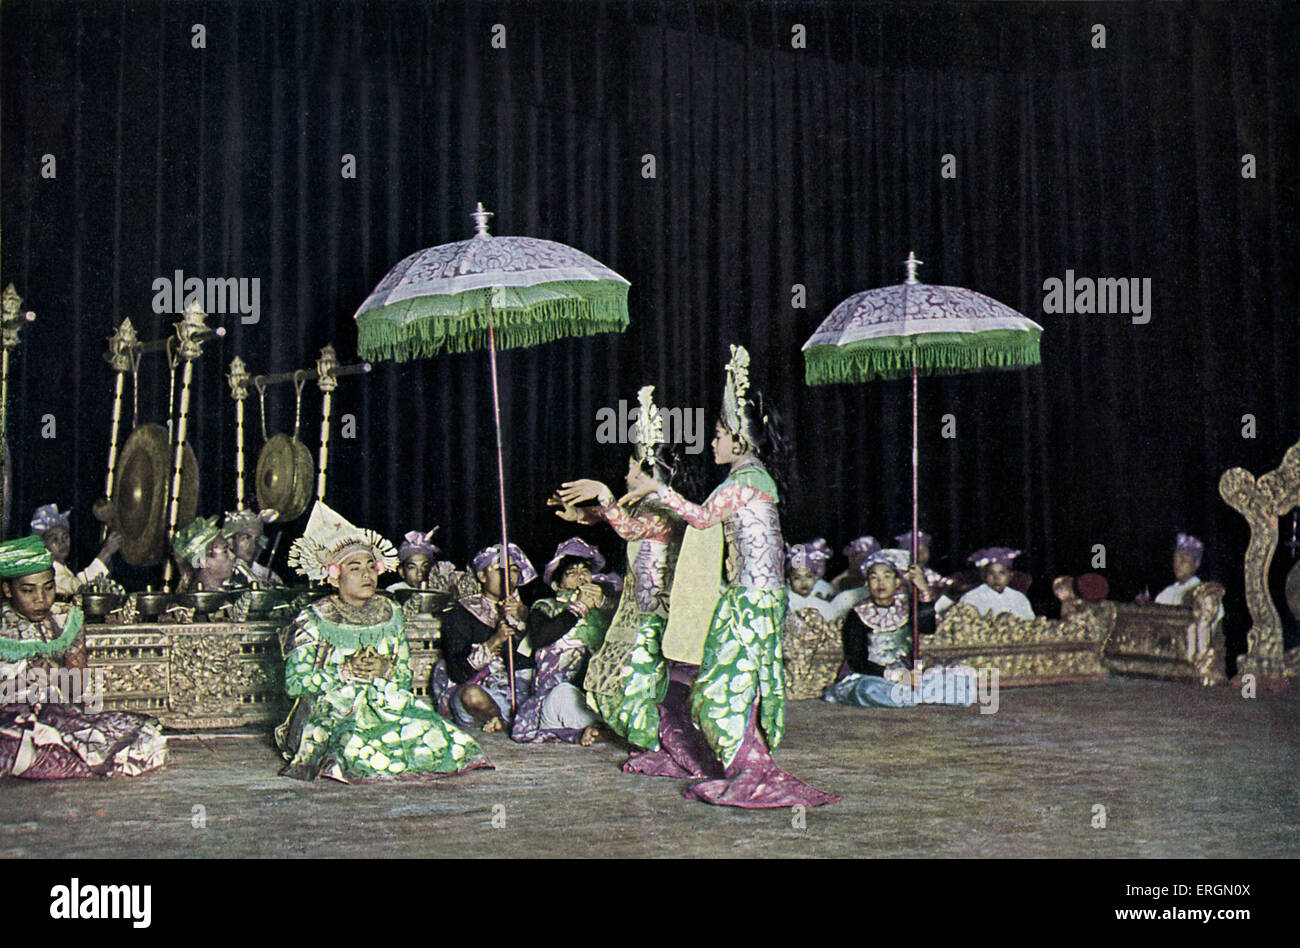 Balinese folk dancers performing in the Theatre of the Dutch Indies c. 1931. - Stock Image